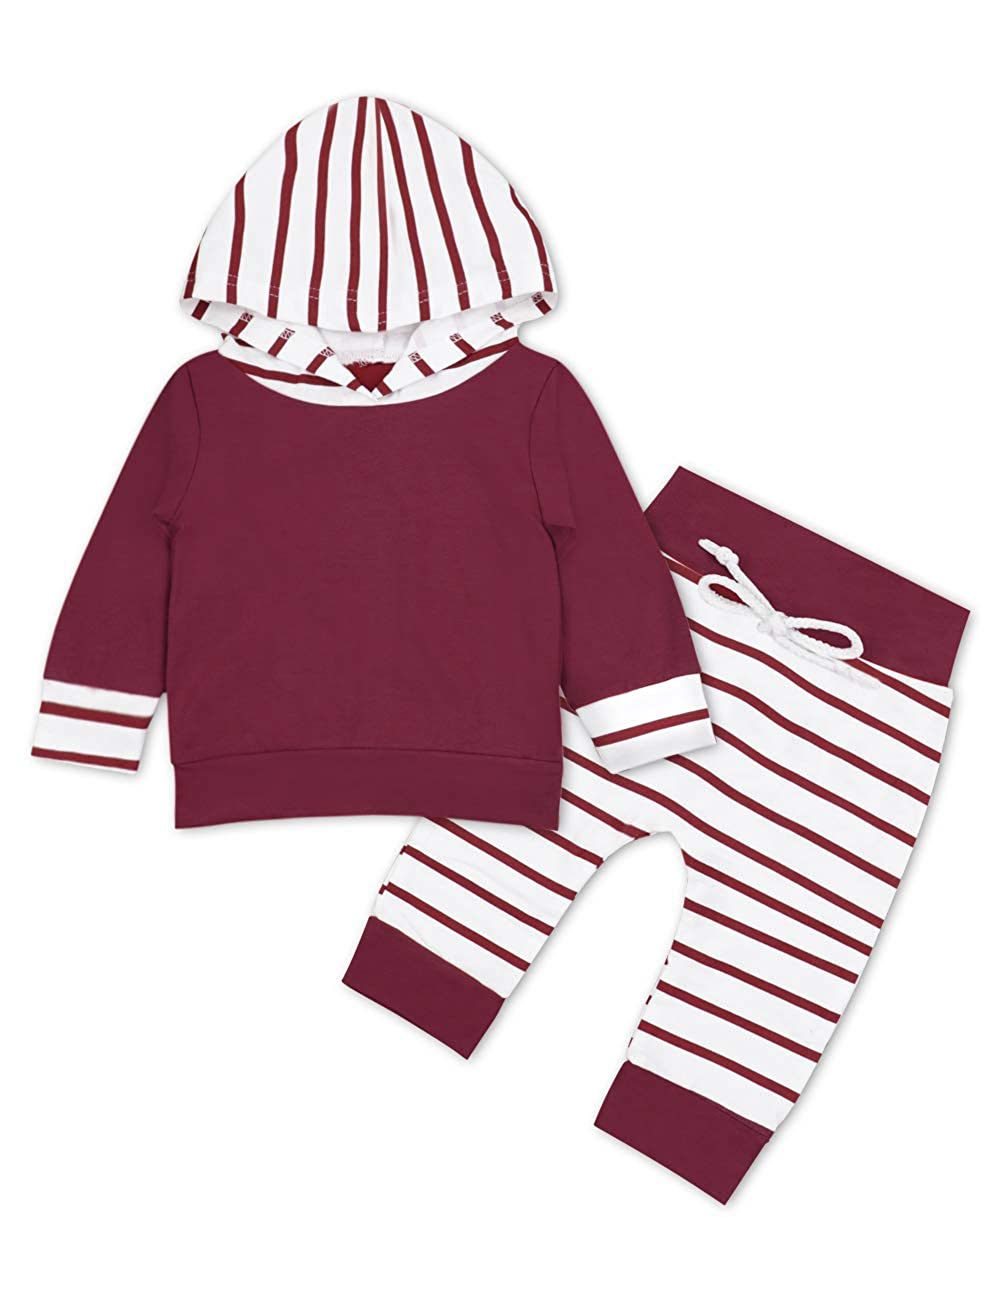 Baby Girl Clothes Long Sleeve Hoodie Sweatshirt Floral Pants with Headband Outfit Sets OKGIRL